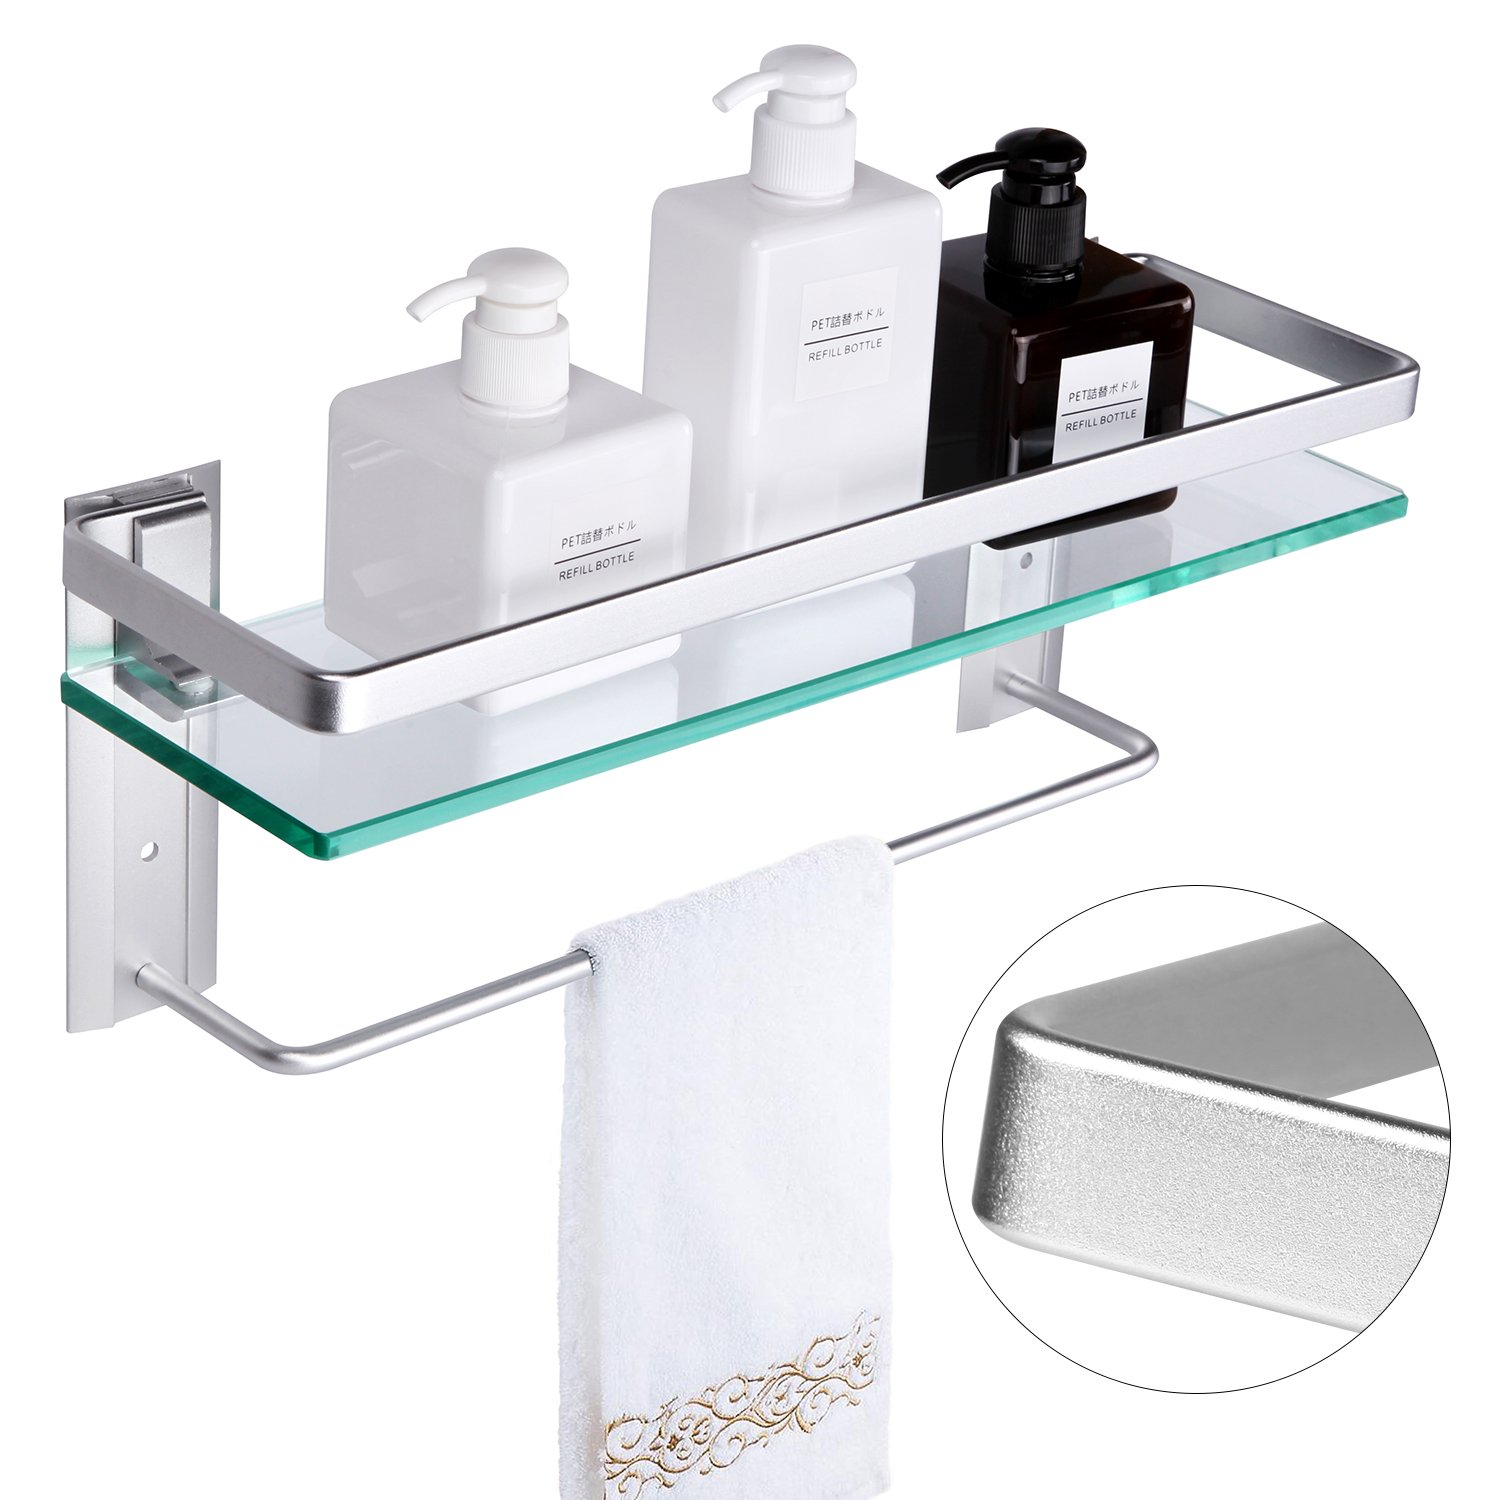 Vdomus Tempered Glass Bathroom Shelf with Towel Bar Wall Mounted Shower storage15.2 by 4.5 inches, Brushed Silver Finish (Tempered Glass) Finish (Tempered Glass)